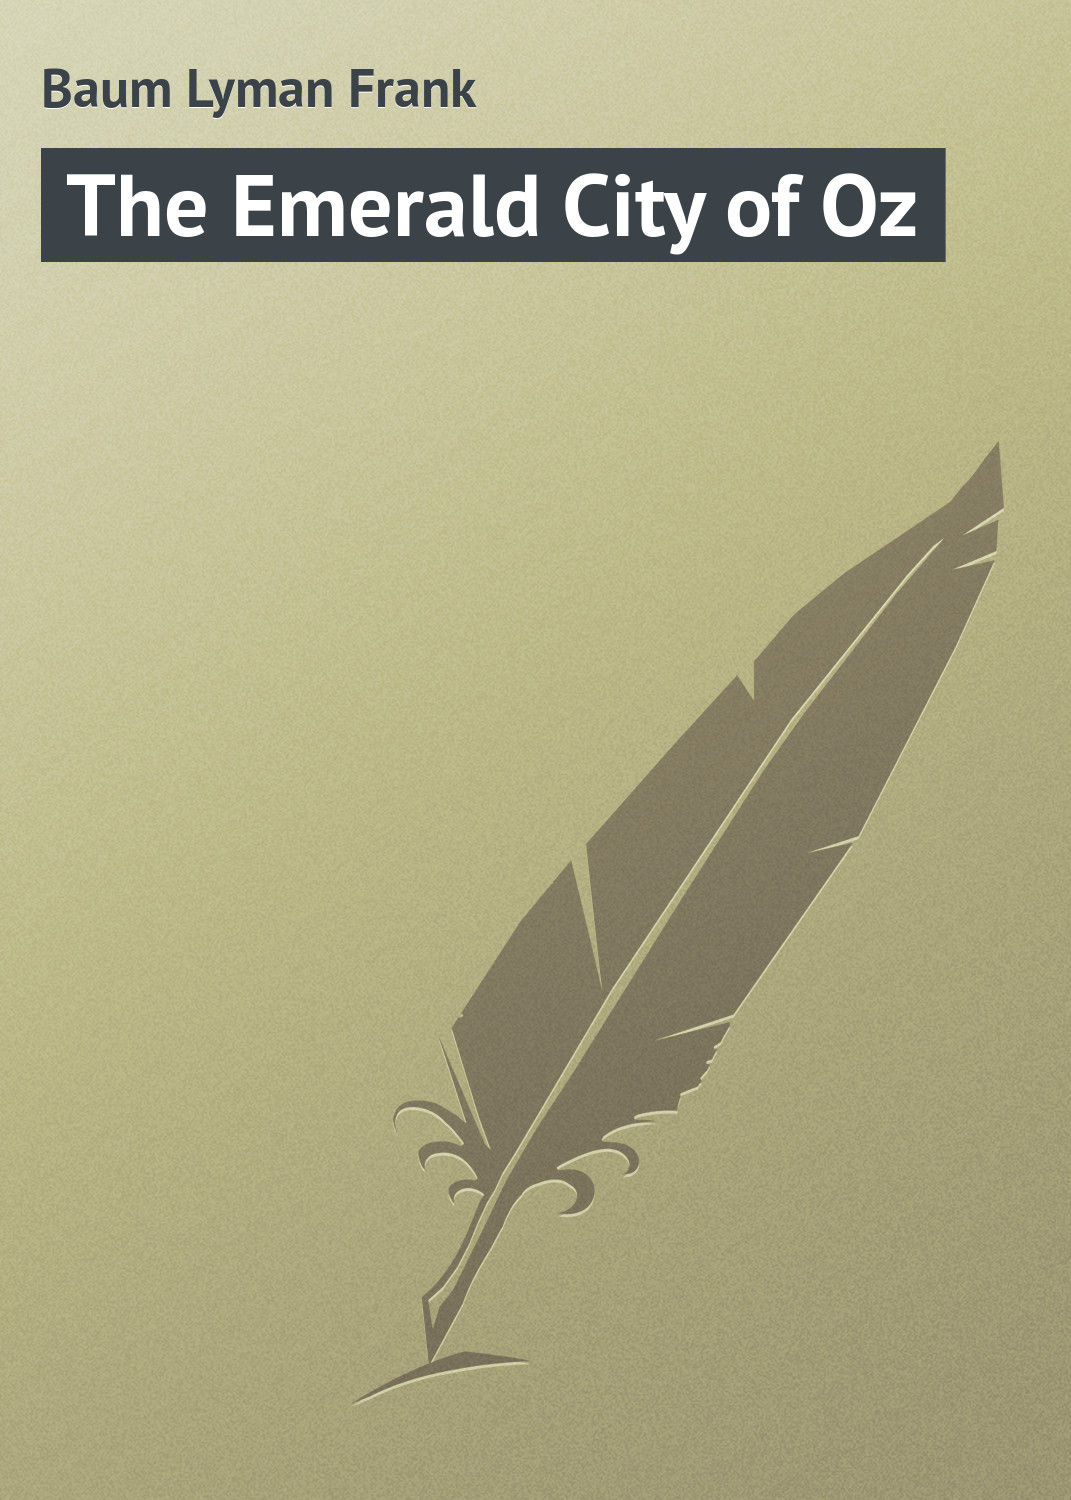 Лаймен Фрэнк Баум The Emerald City of Oz цена